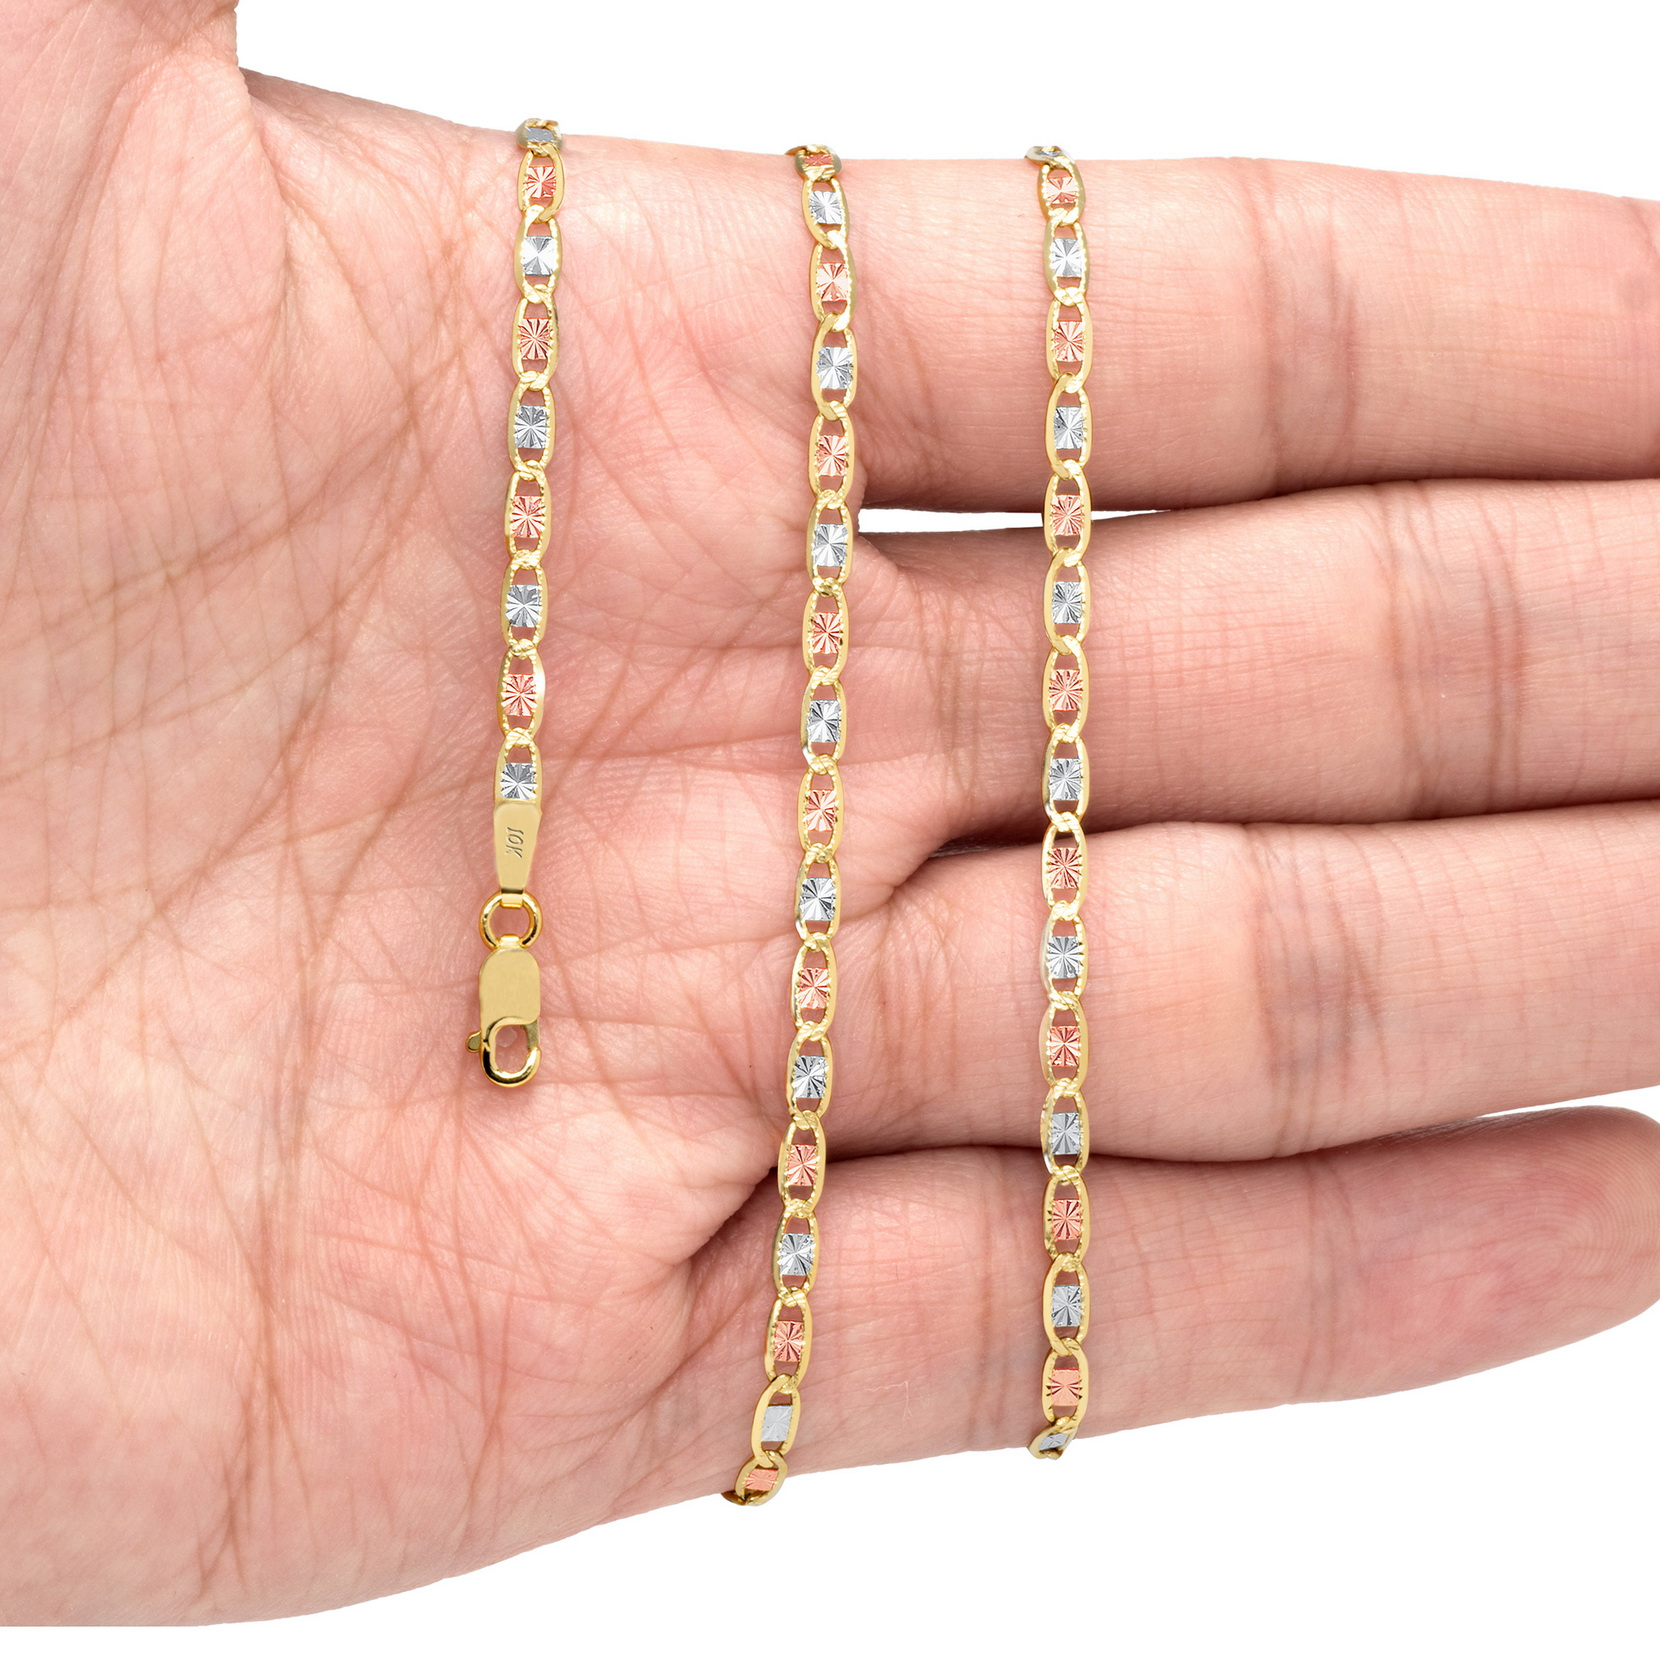 10K-Yellow-Rose-White-Gold-1-5mm-6mm-Valentino-Chain-Necklace-Bracelet-7-034-30-034 thumbnail 14